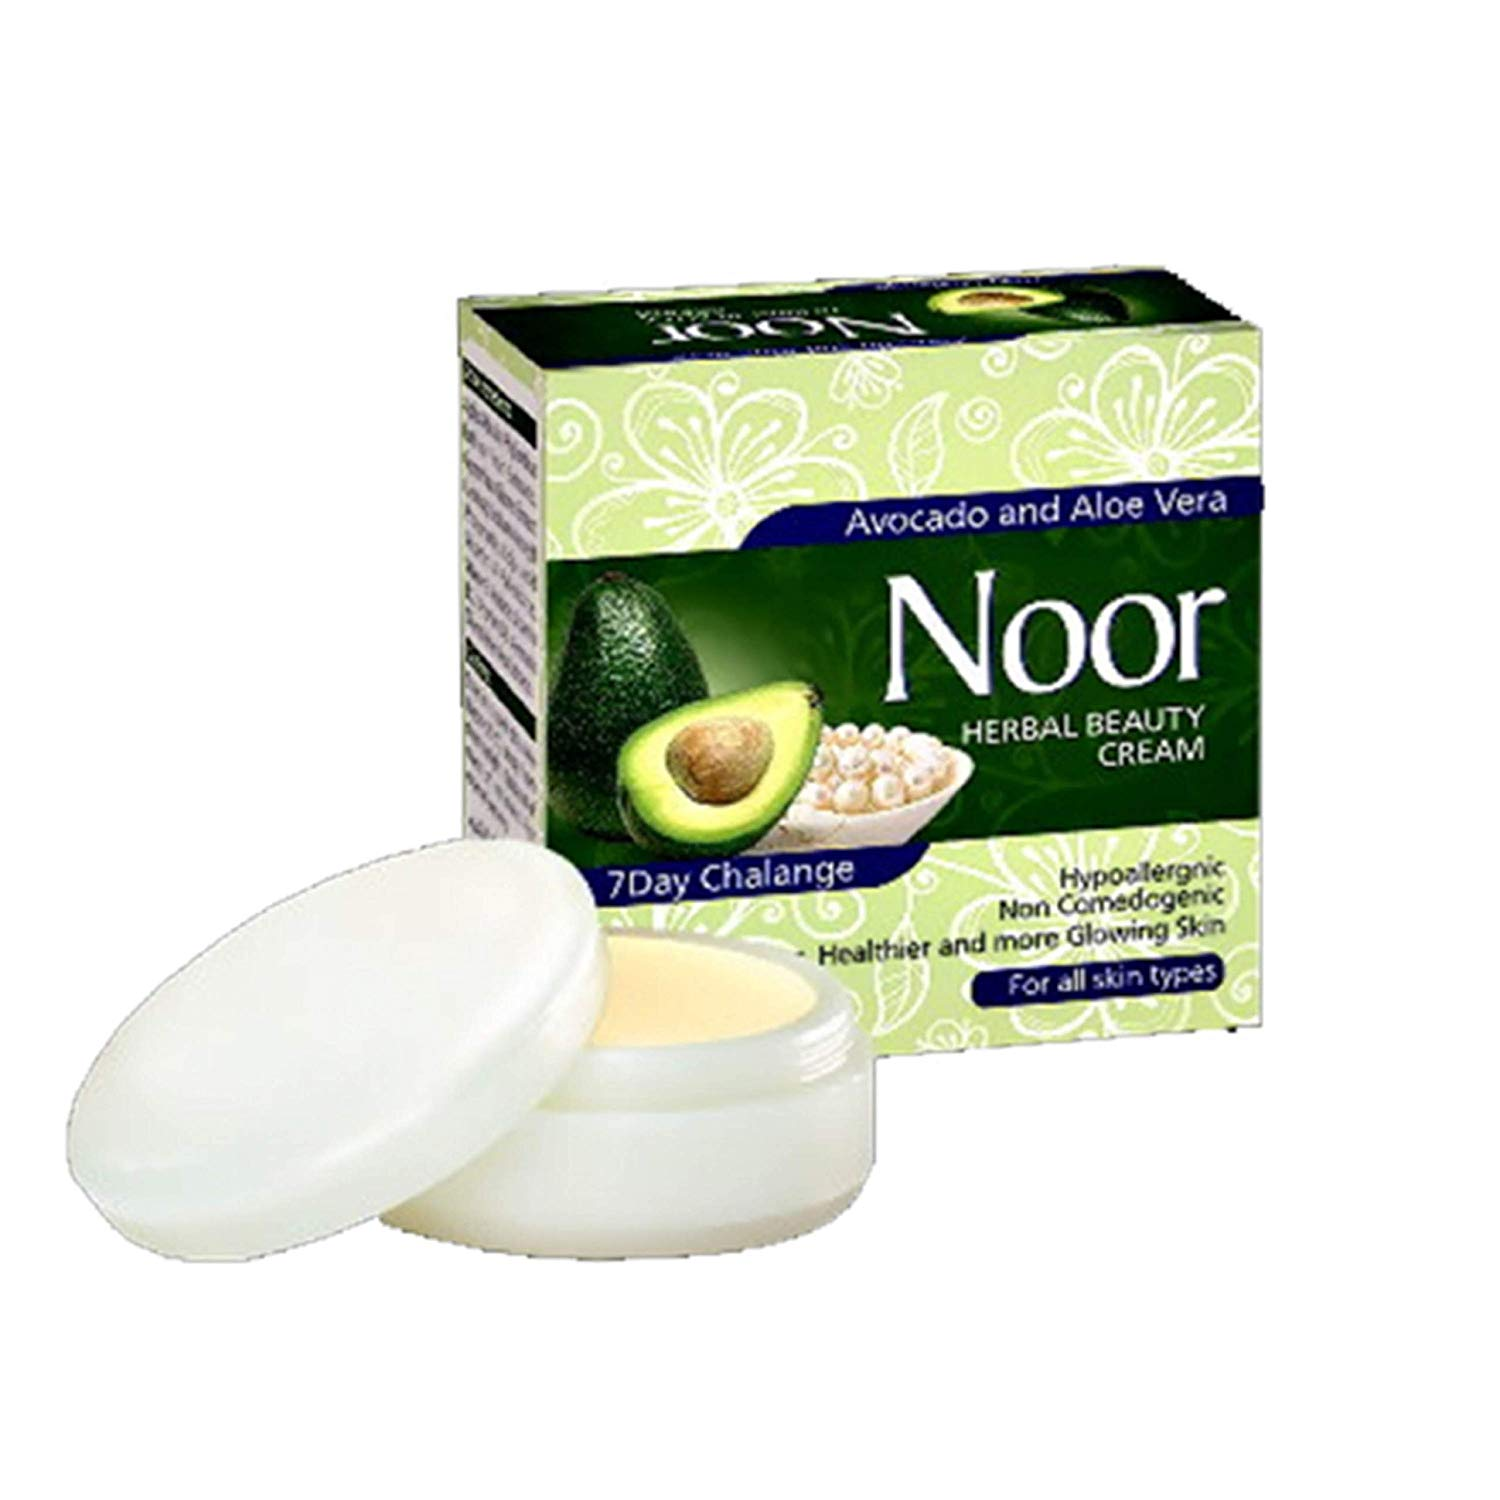 noor herbal beauty cream review